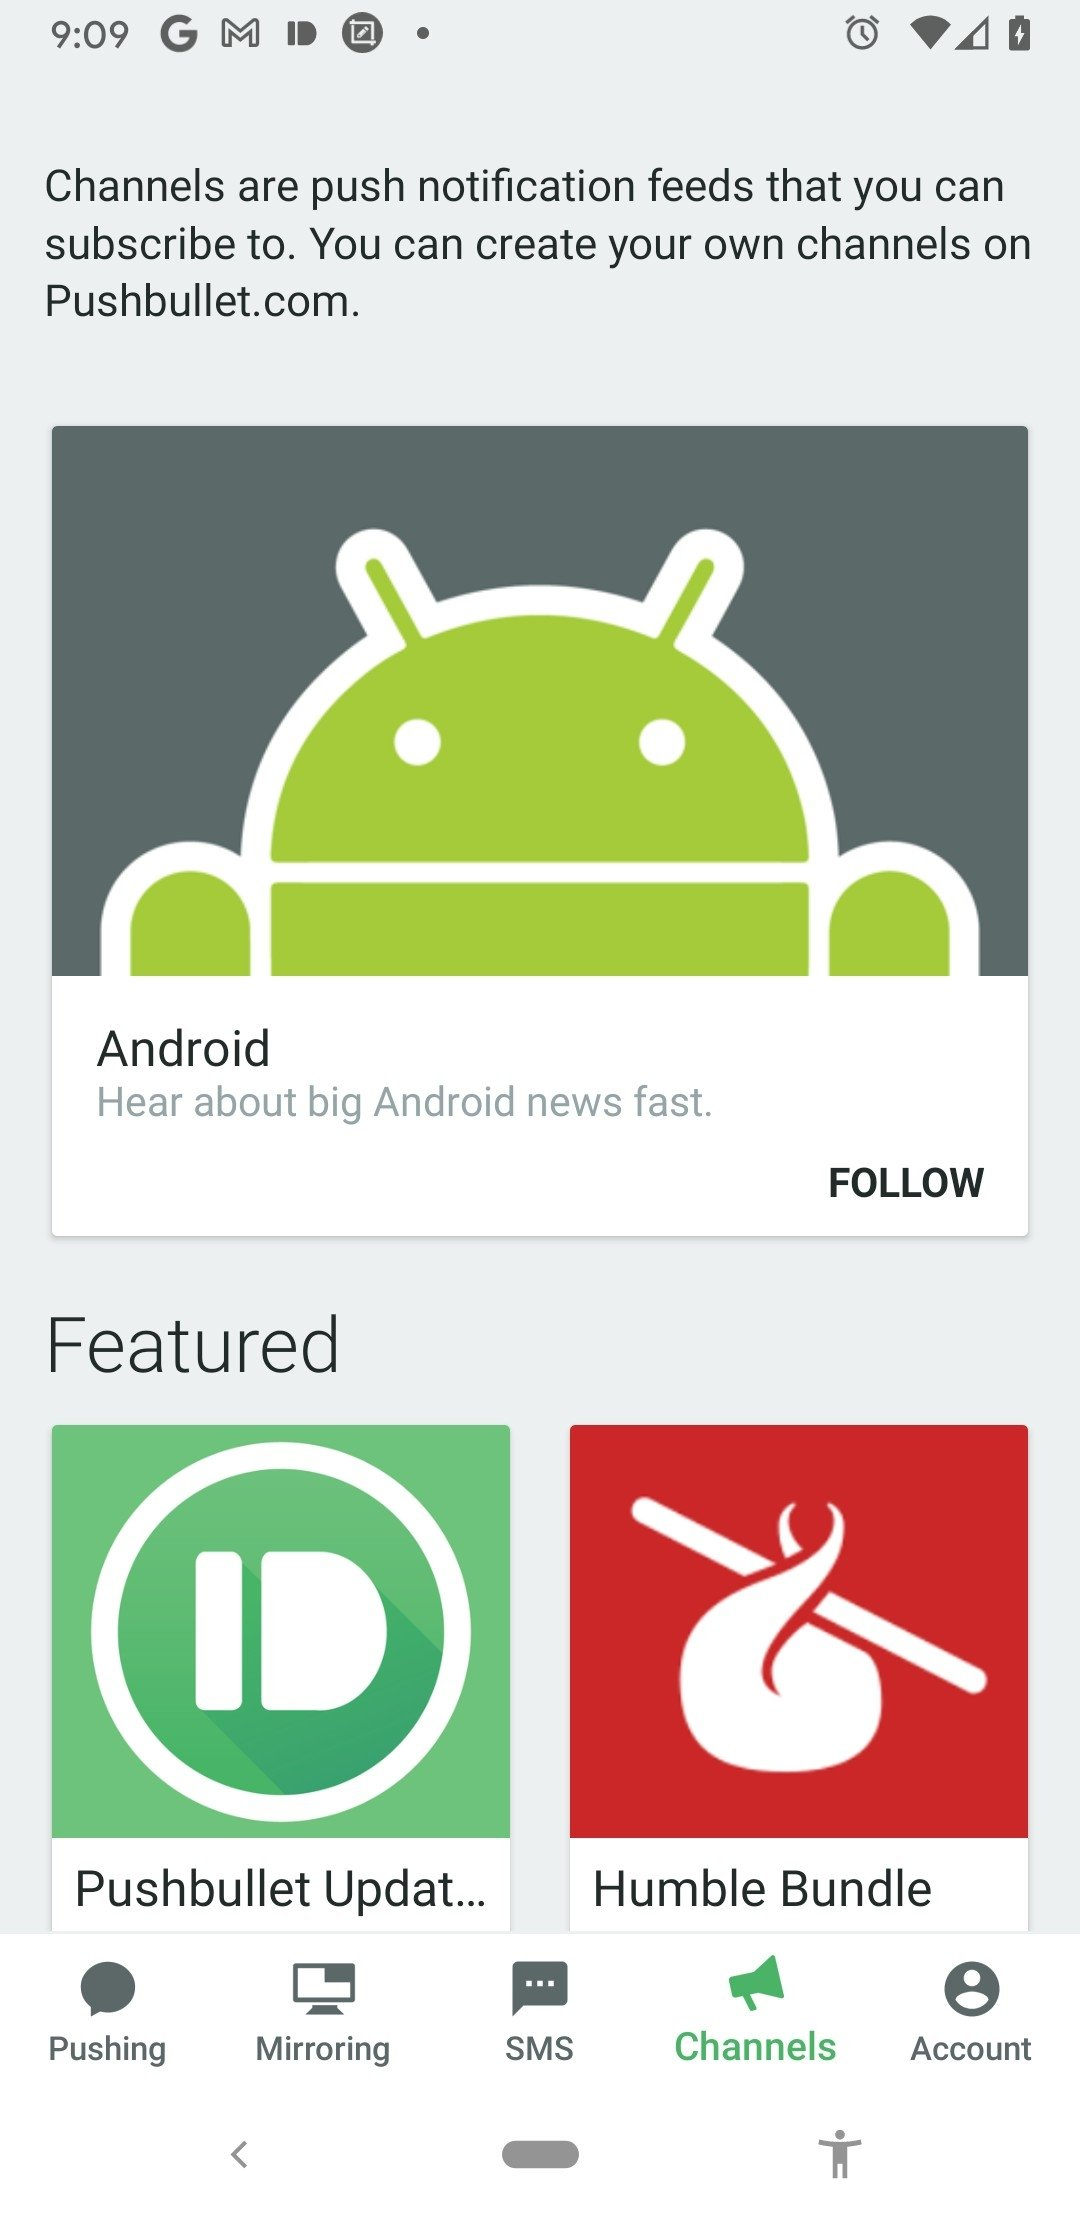 Pushbullet 18 2 18 - Download for Android APK Free